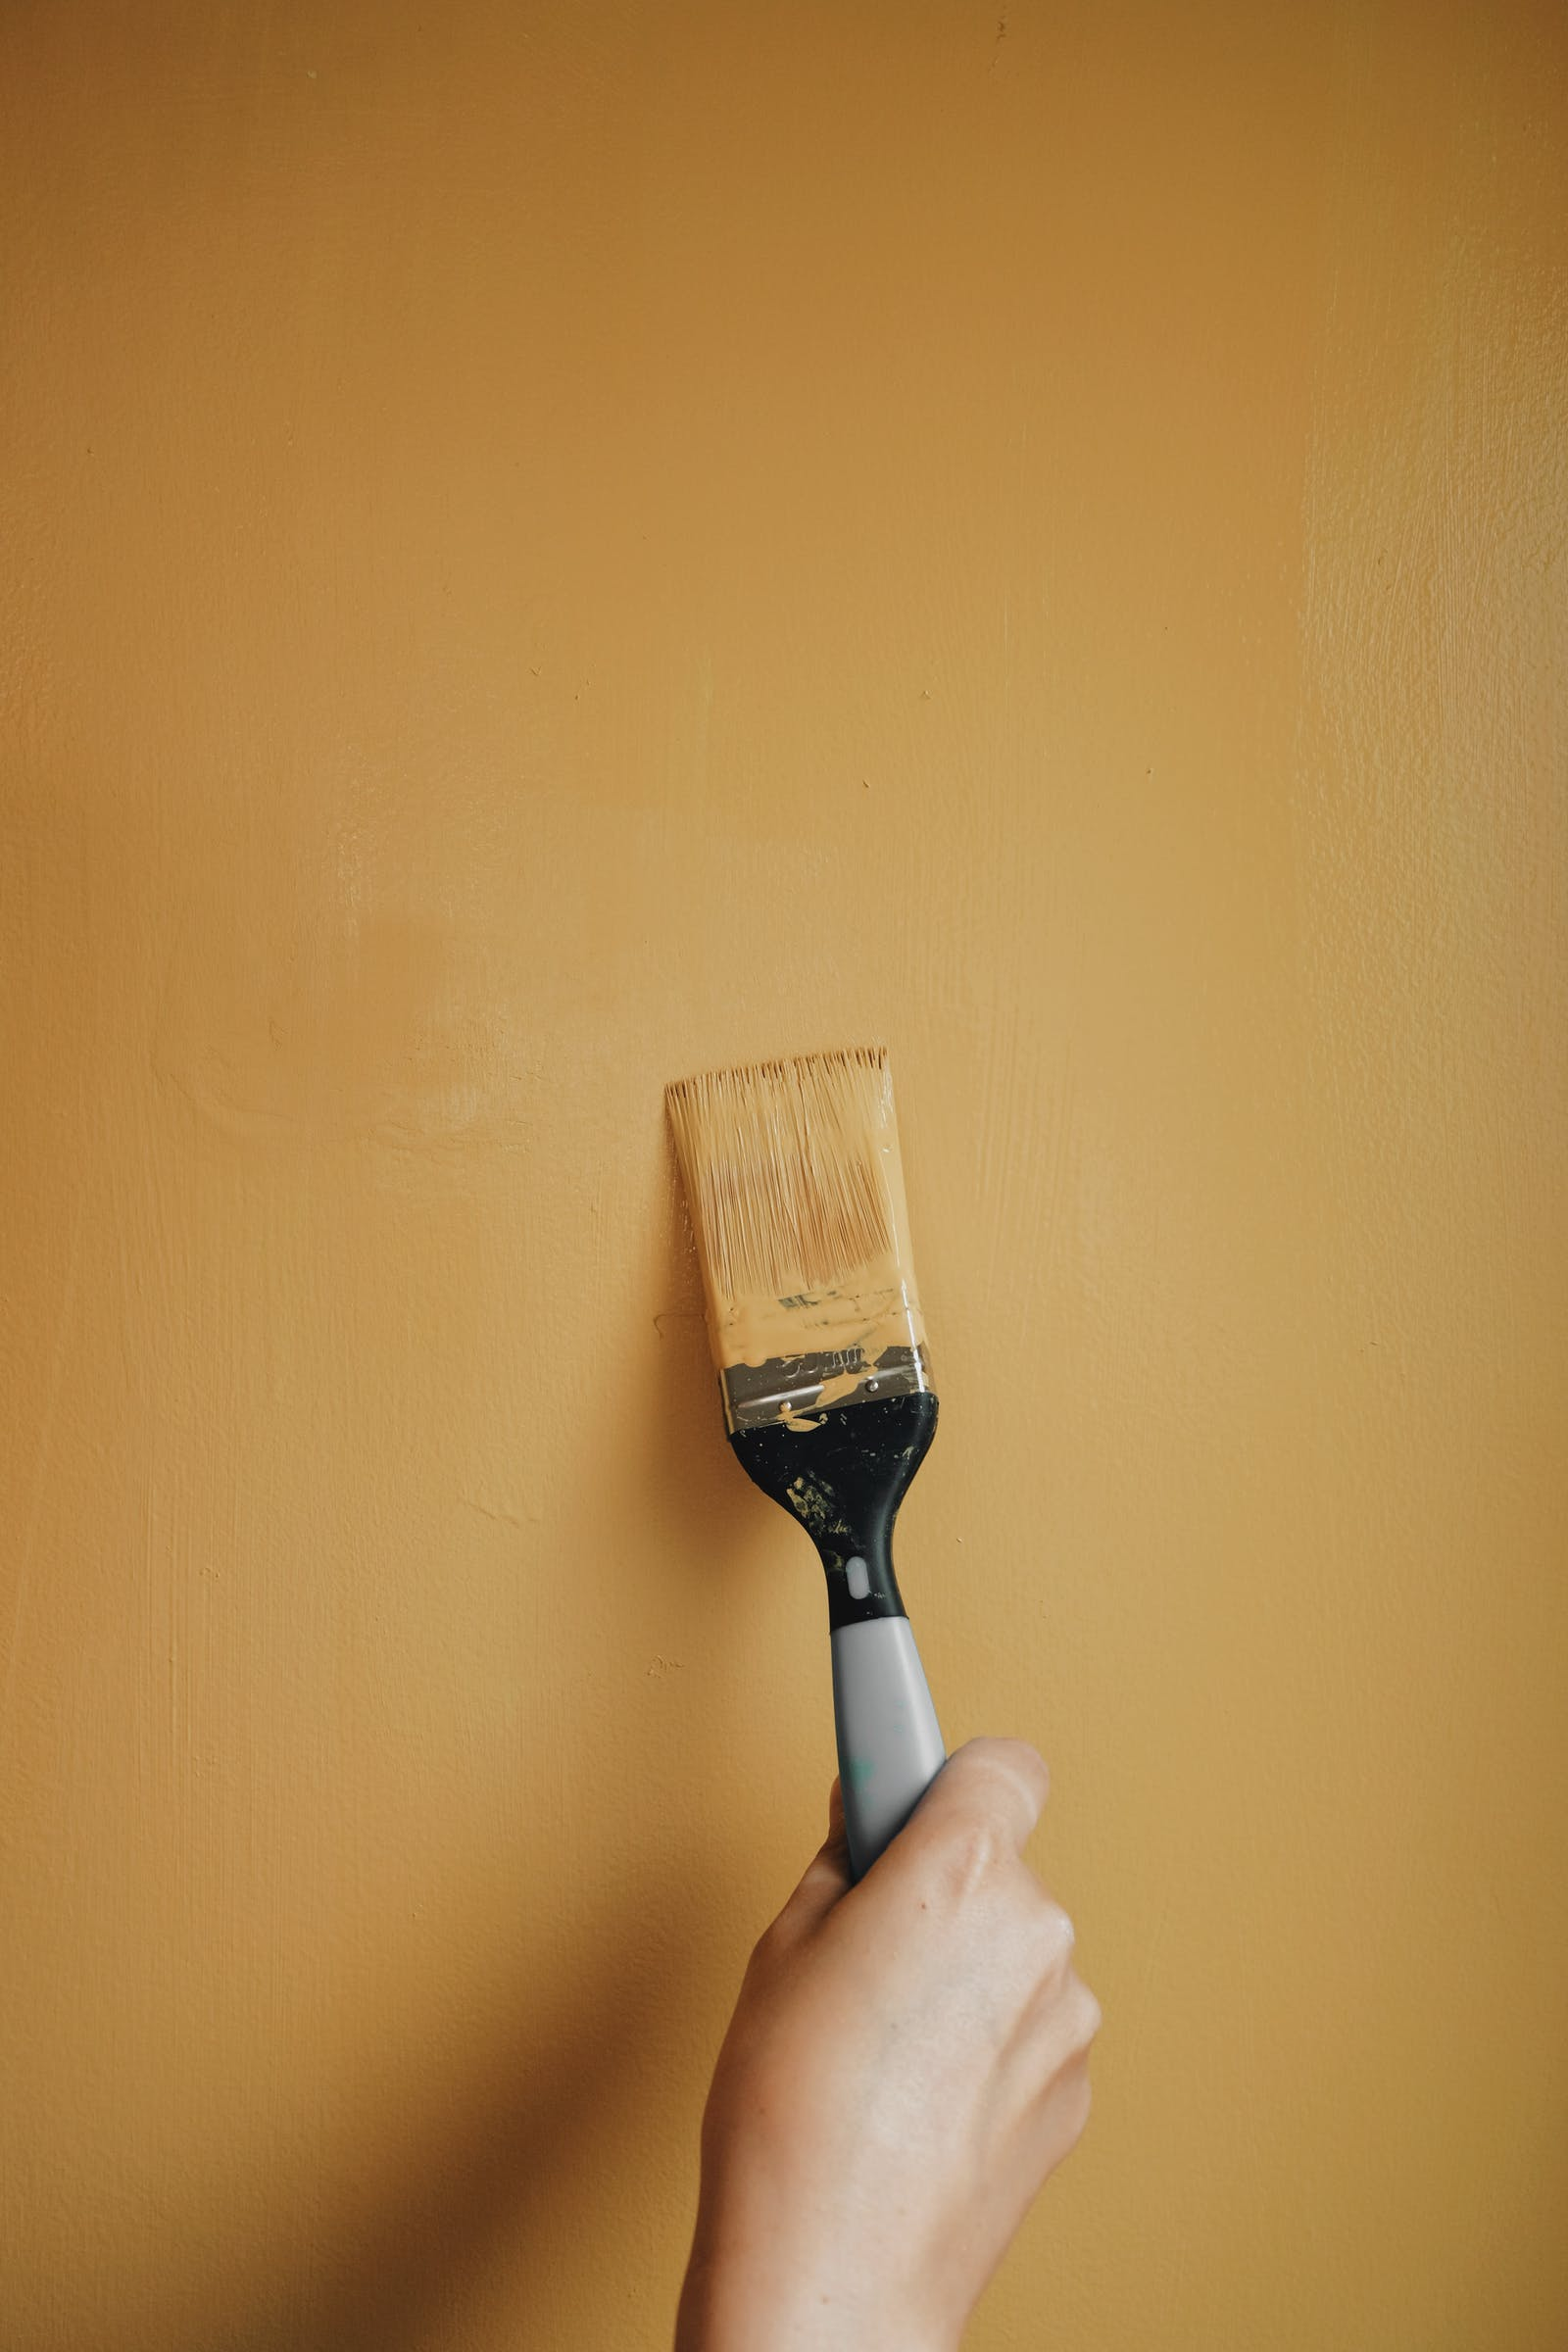 Image of person's hand using a paintbrush to paint the walls Yellow 02